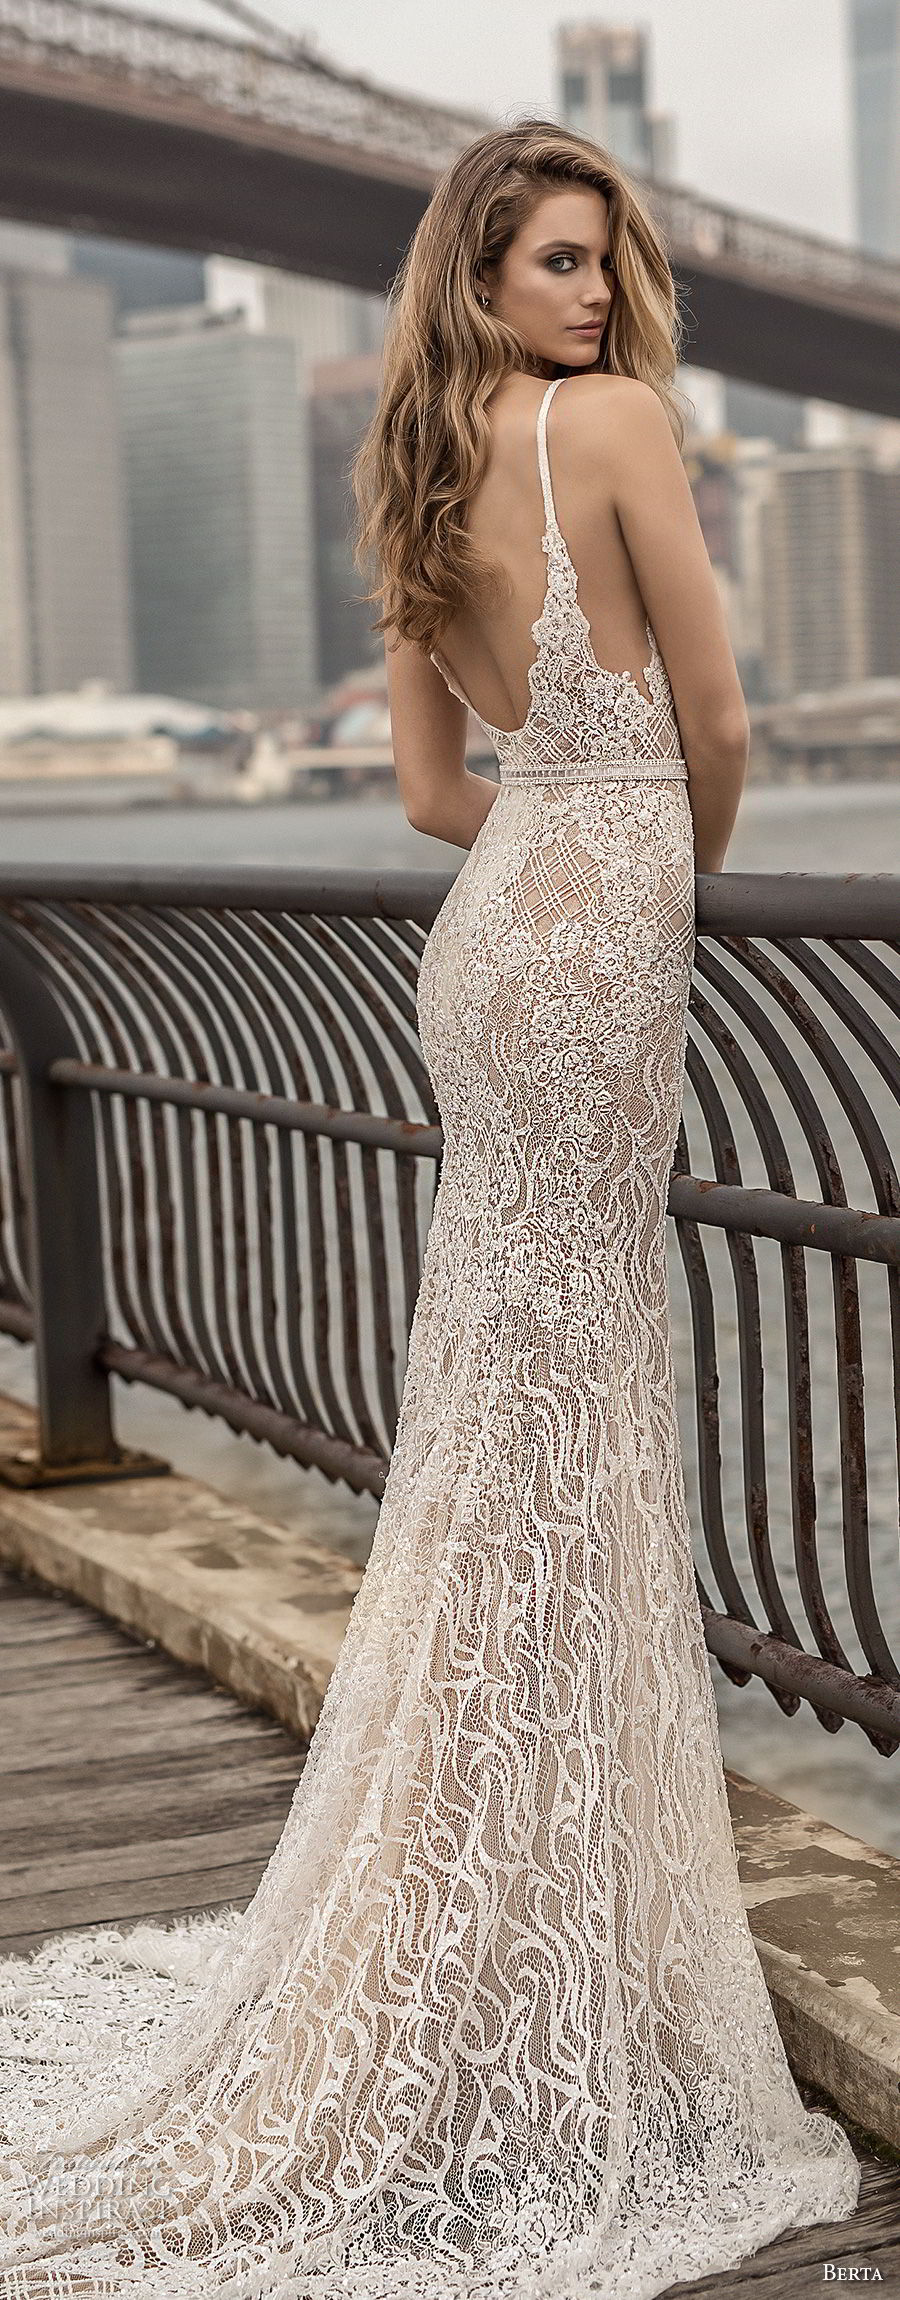 berta spring 2018 bridal spaghetti strap deep plunging sweetheart neckline full embellishment sexy elegant fit and flare wedding dress open scoop back chapel train (6) bv